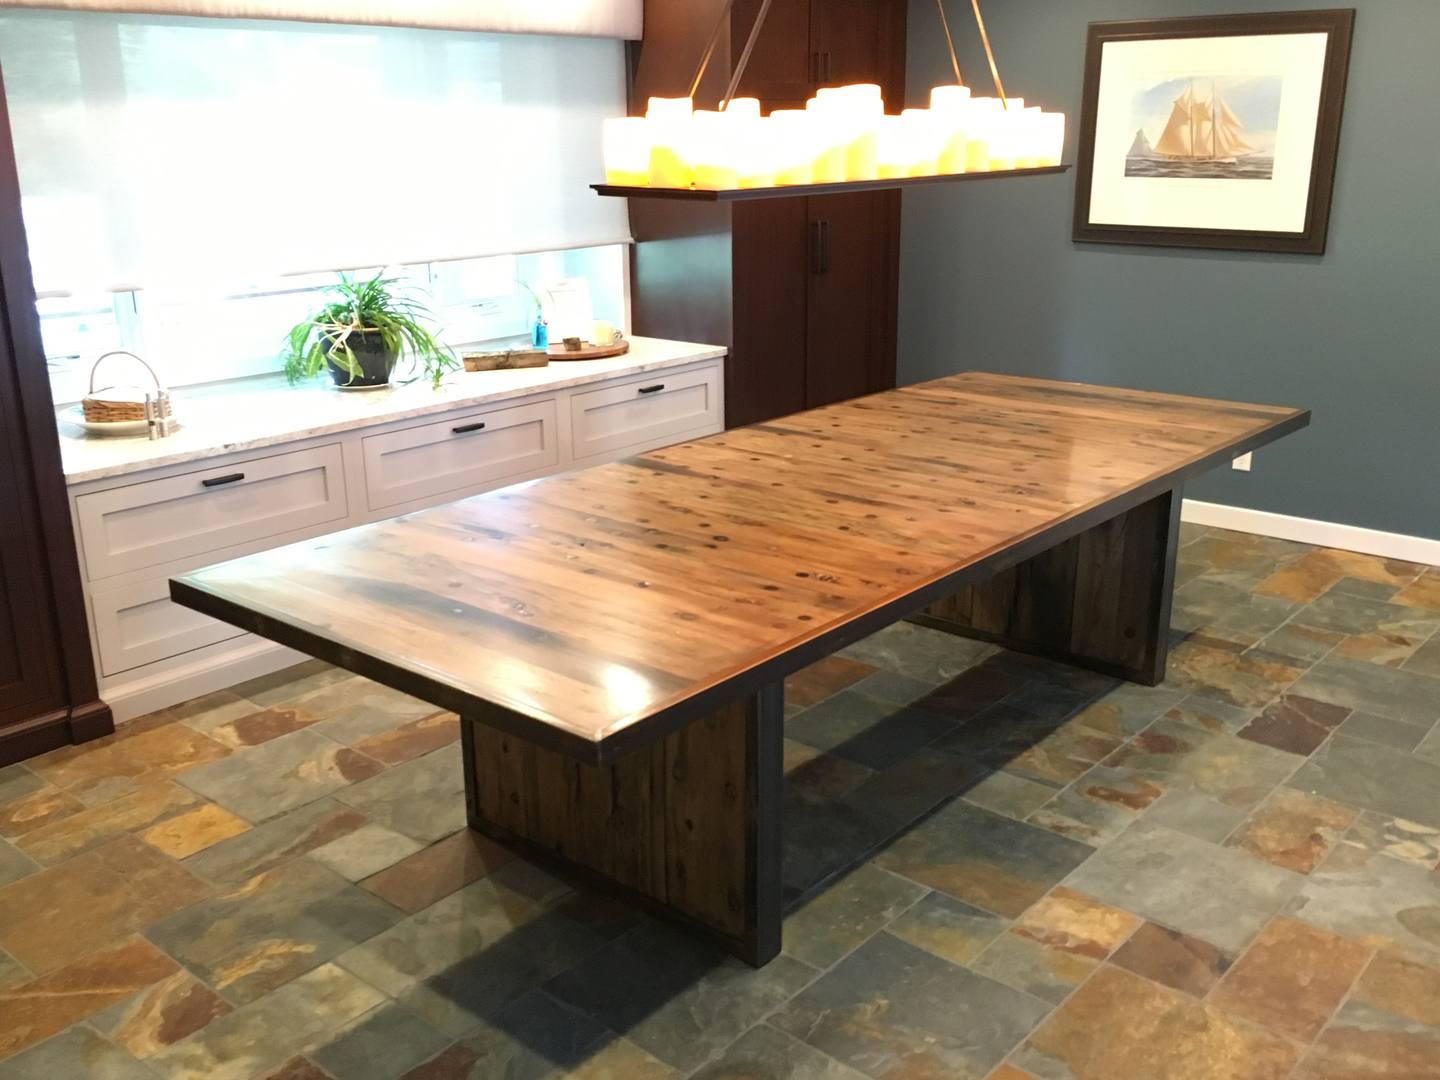 Custom made kitchen island from vintage reclaimed wood with or without - Custom Made Kitchen Island From Vintage Reclaimed Wood With Or Without 48